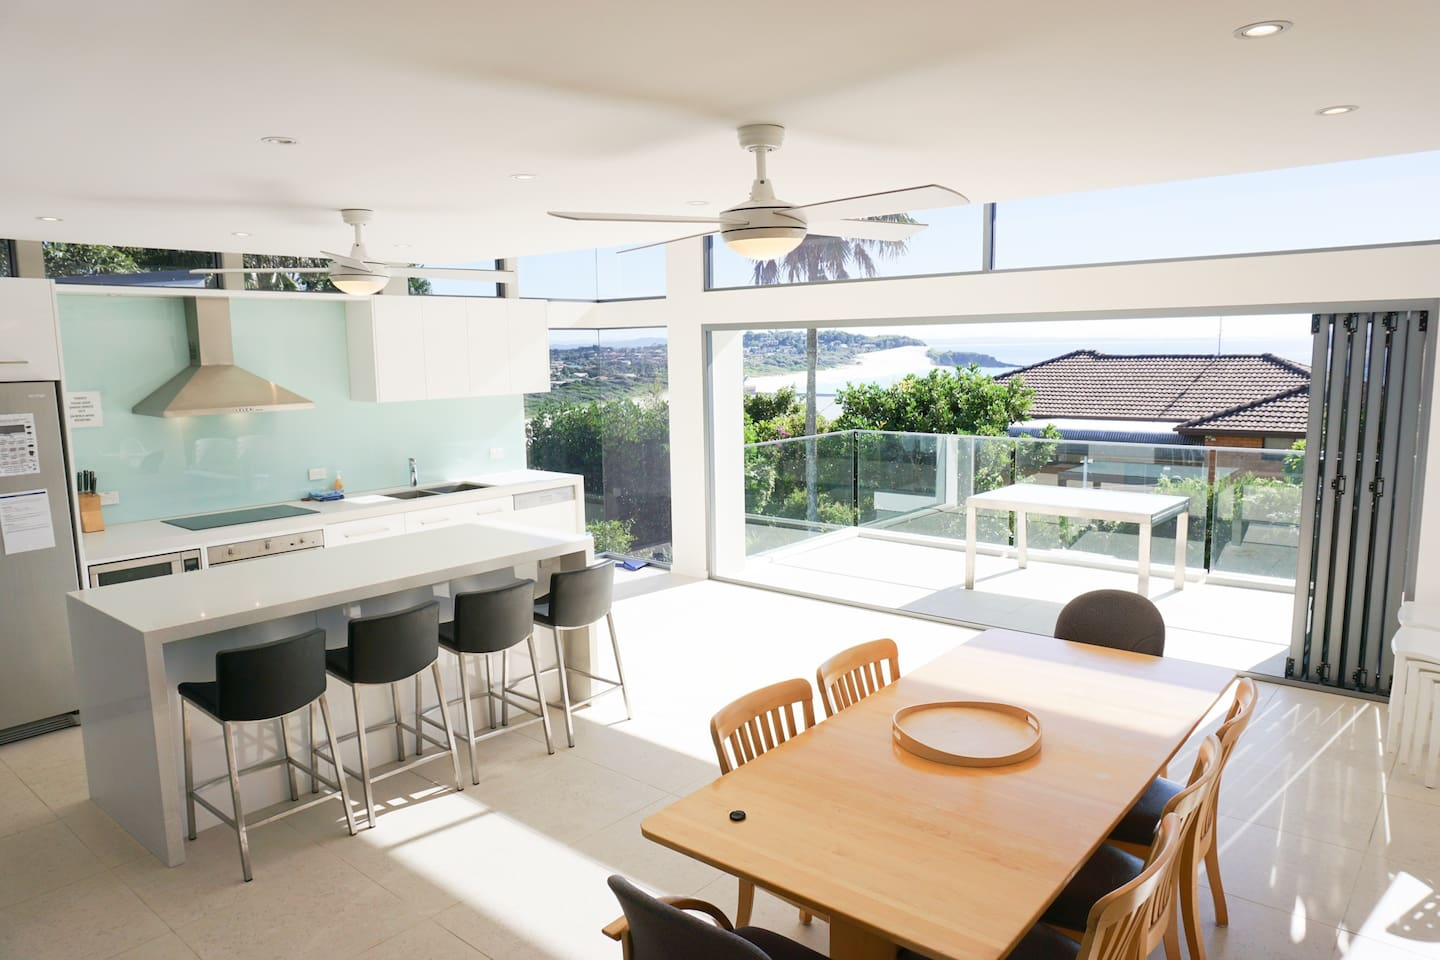 Modern, spacious, bright kitchen and dining